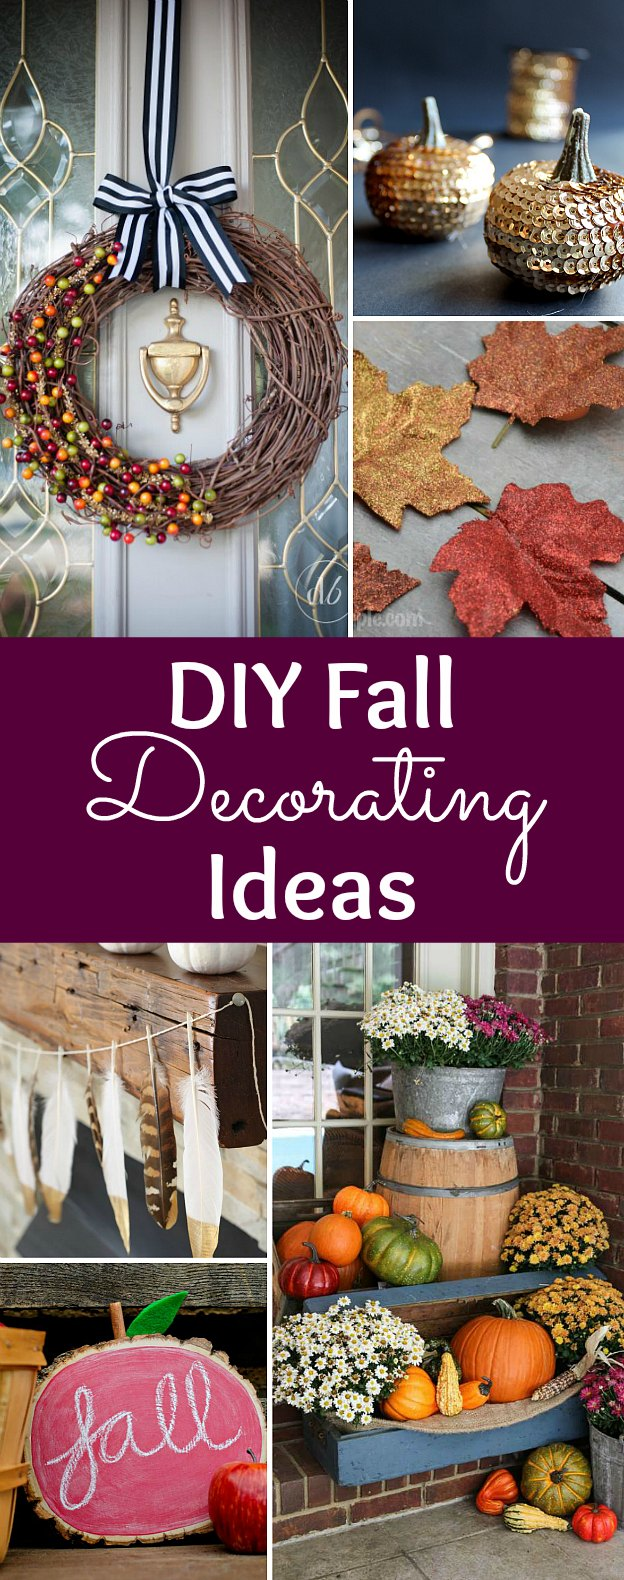 Over 20 DIY Fall Decorating Ideas! Add a touch of autumn to your home with these easy DIY fall decor ideas: wreaths, outdoor, indoor, porch, tablescapes and centerpieces, and more! These simple DIY fall crafts are perfect for homes and apartments ... all on a budget! | Hello Little Home